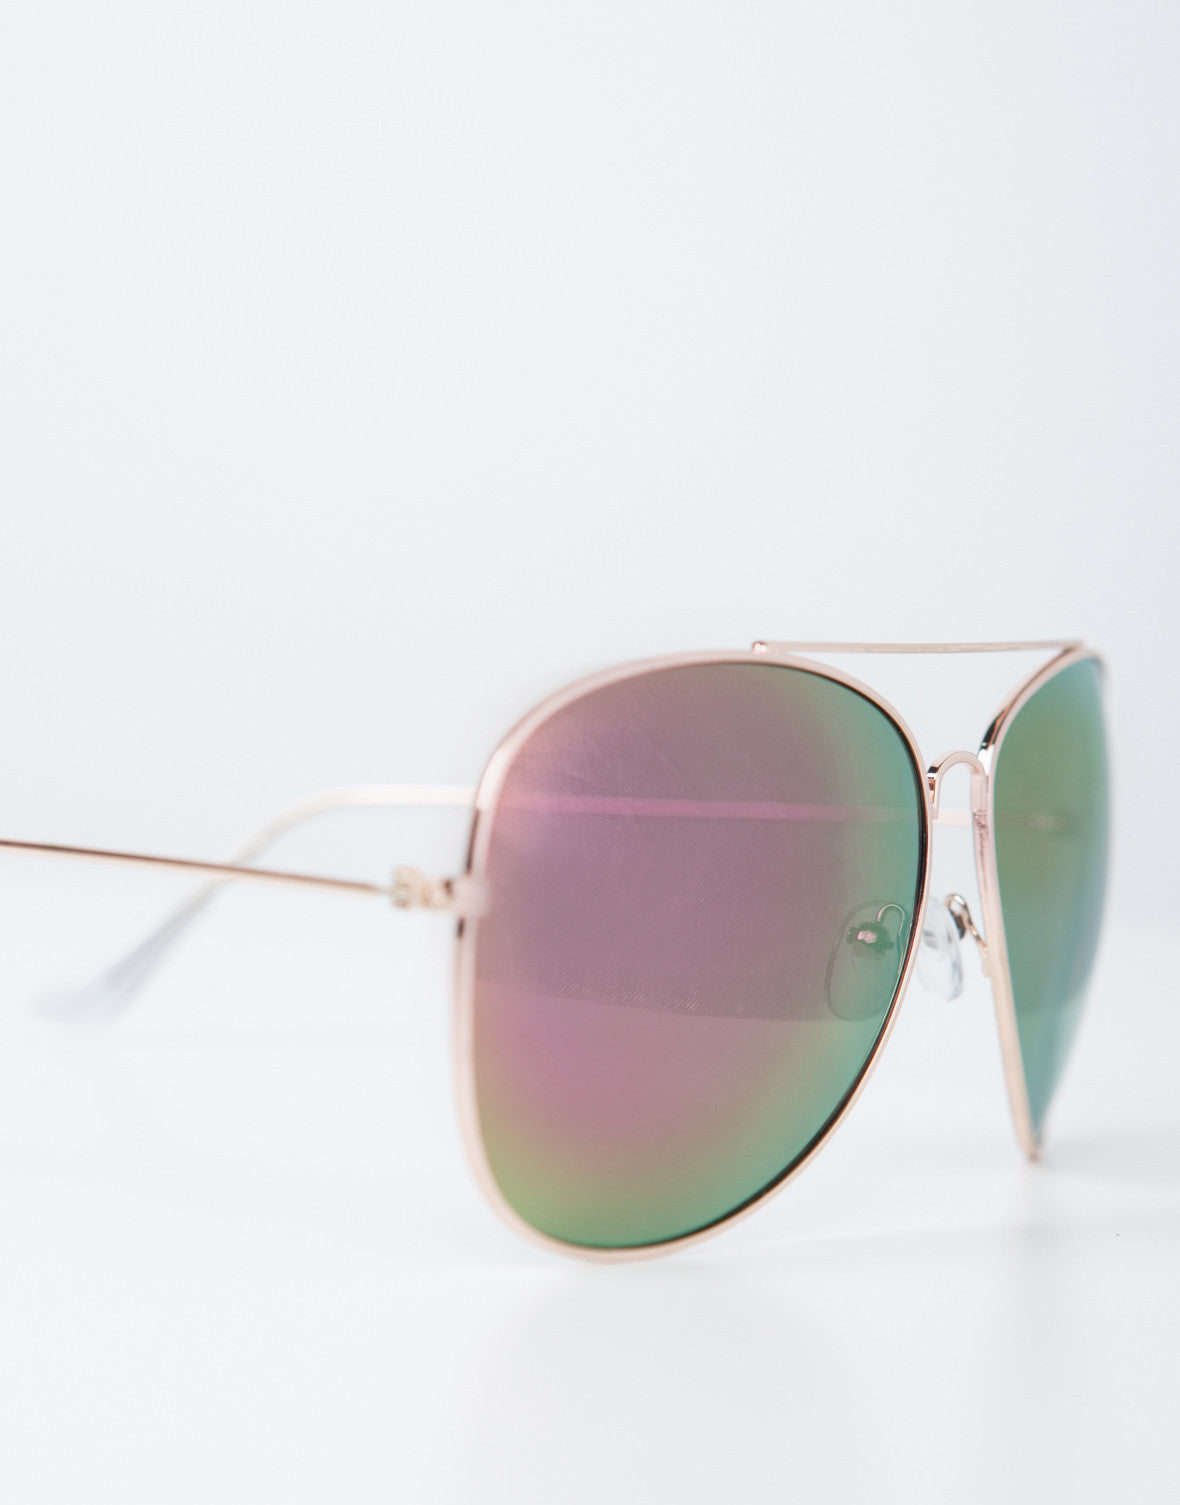 Detail of Mirrored Aviator Sunglasses